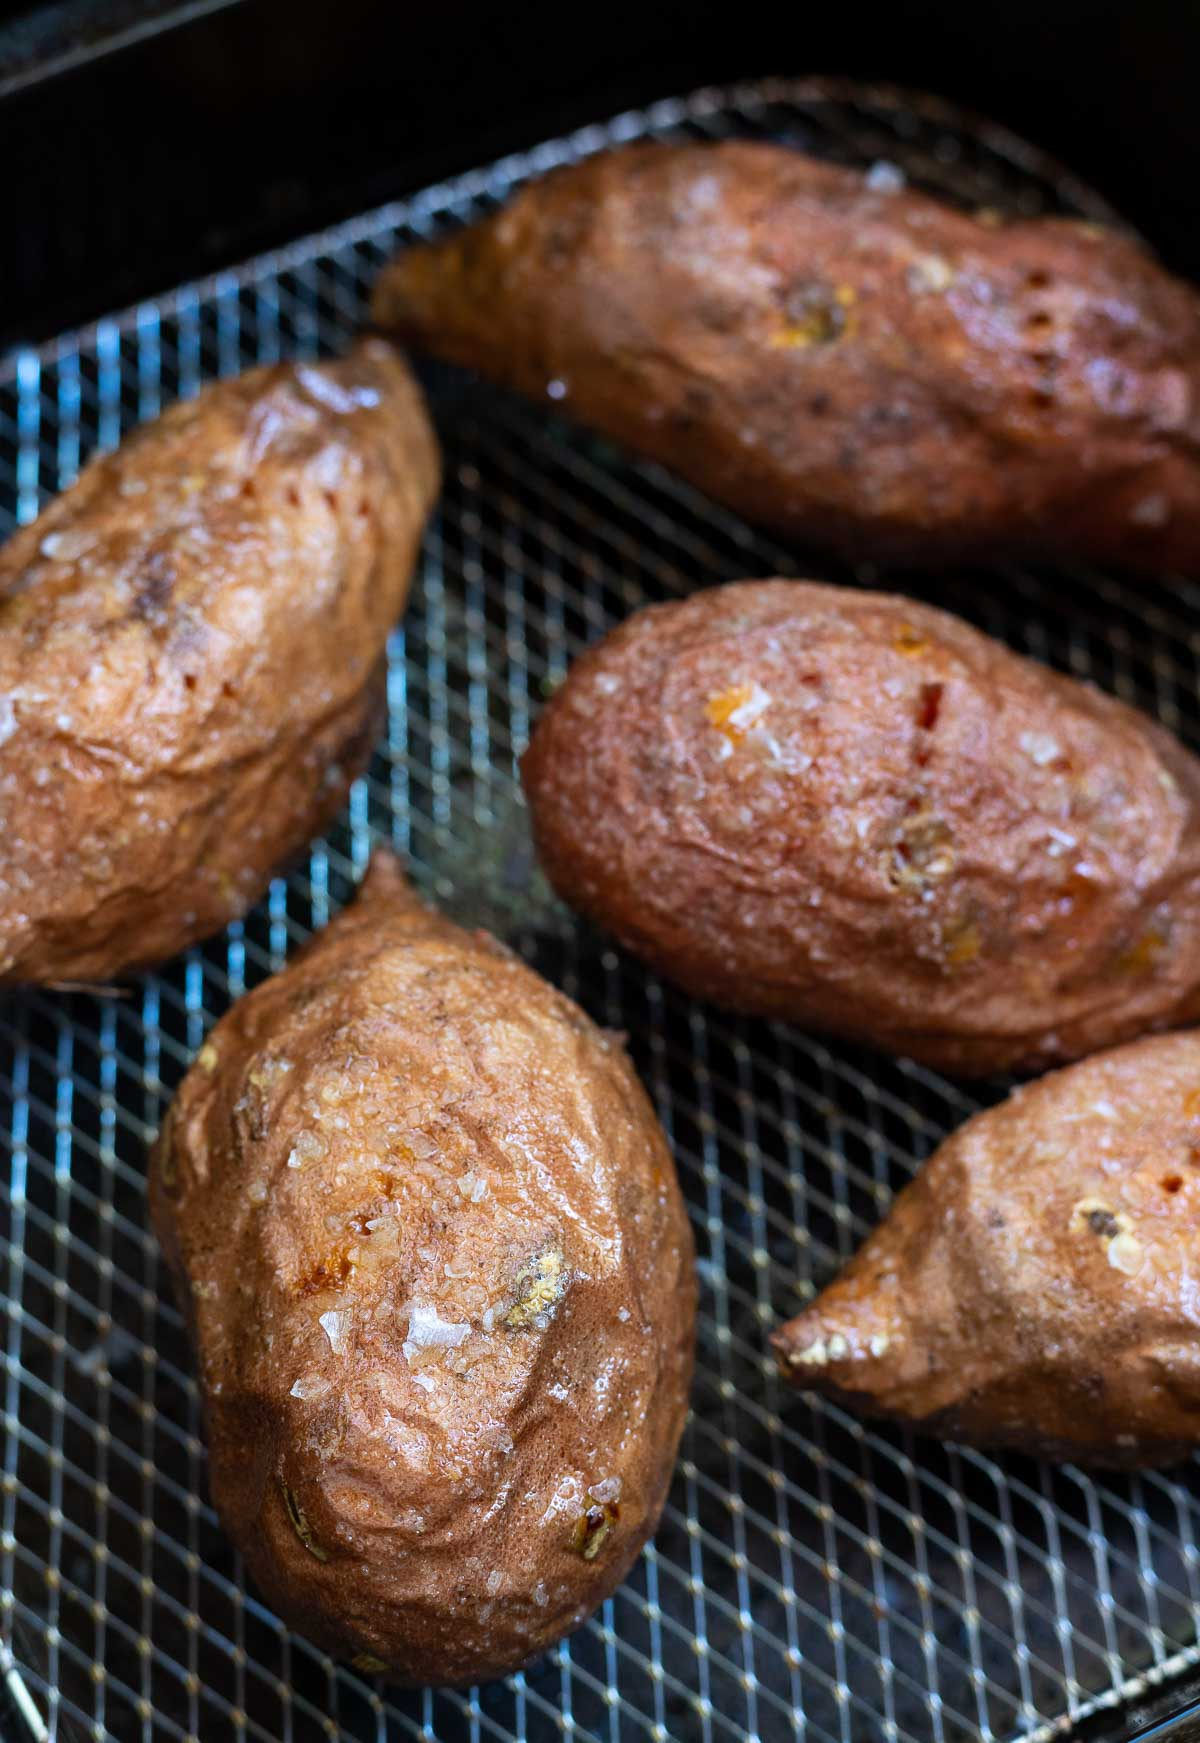 cooked sweet potatoes in air fryer basket